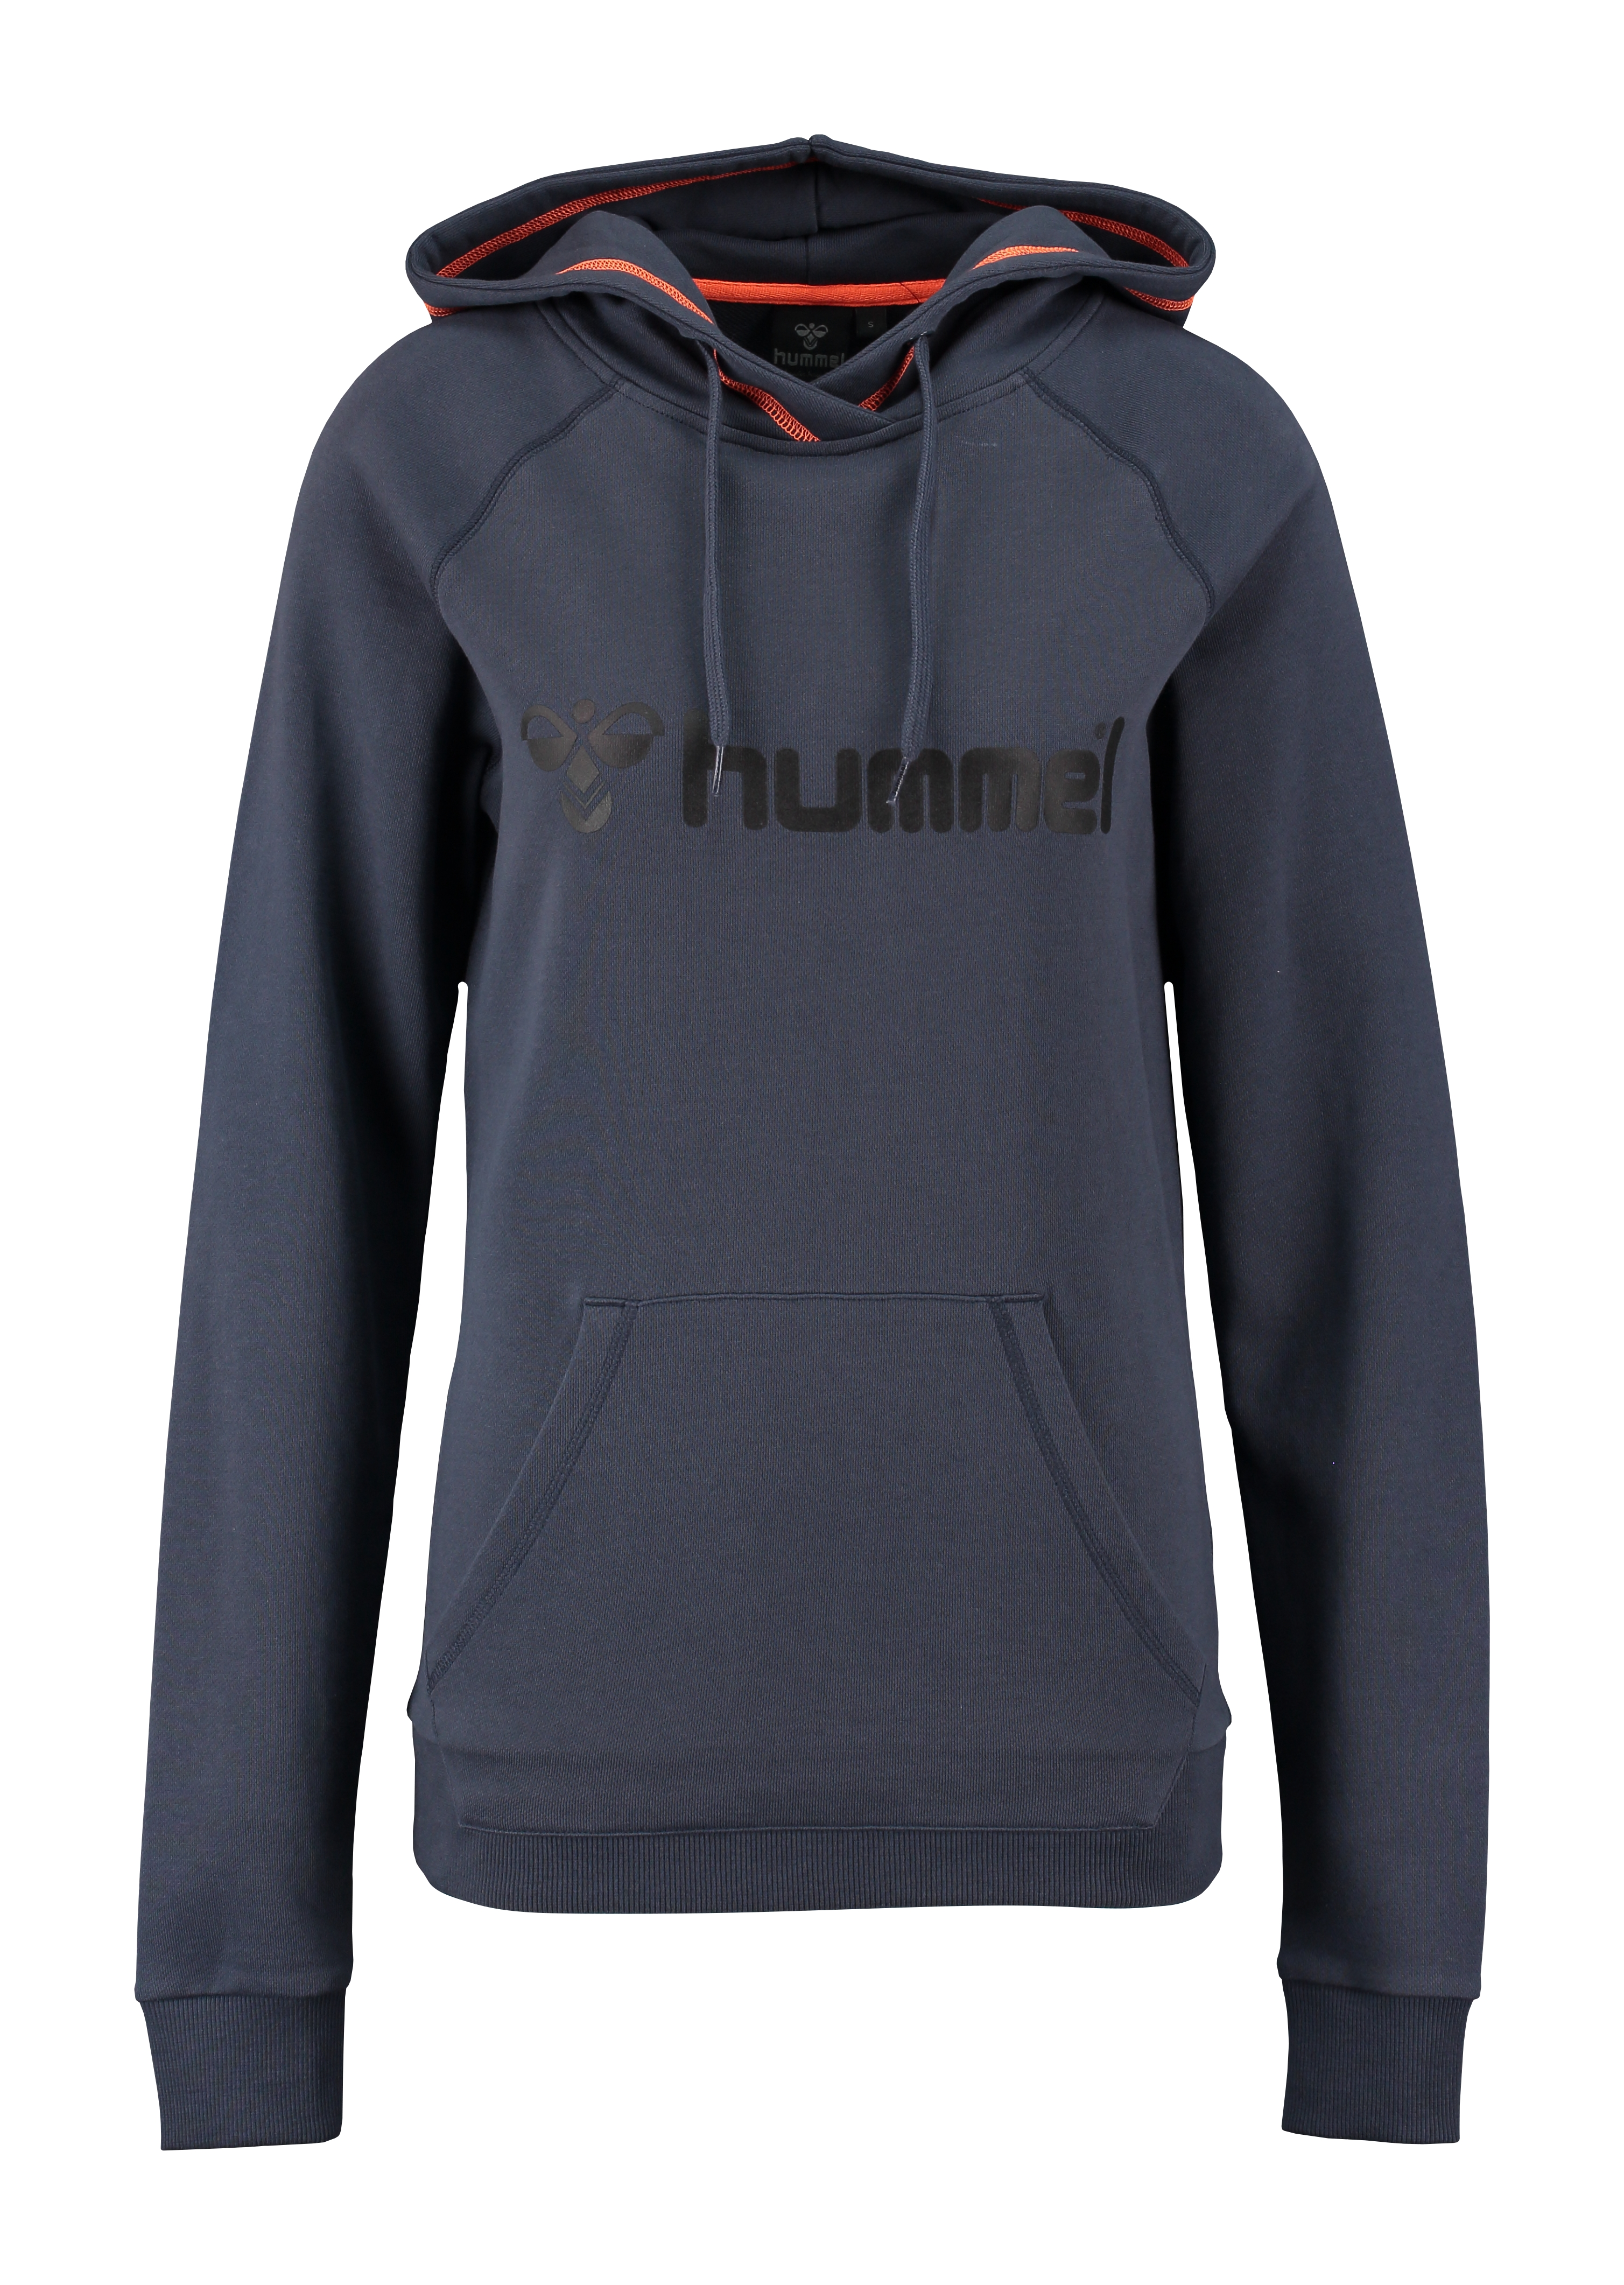 1a6b6620 Motehus AS - Hummel - Classic Bee Womens Hoodie mørkeblå